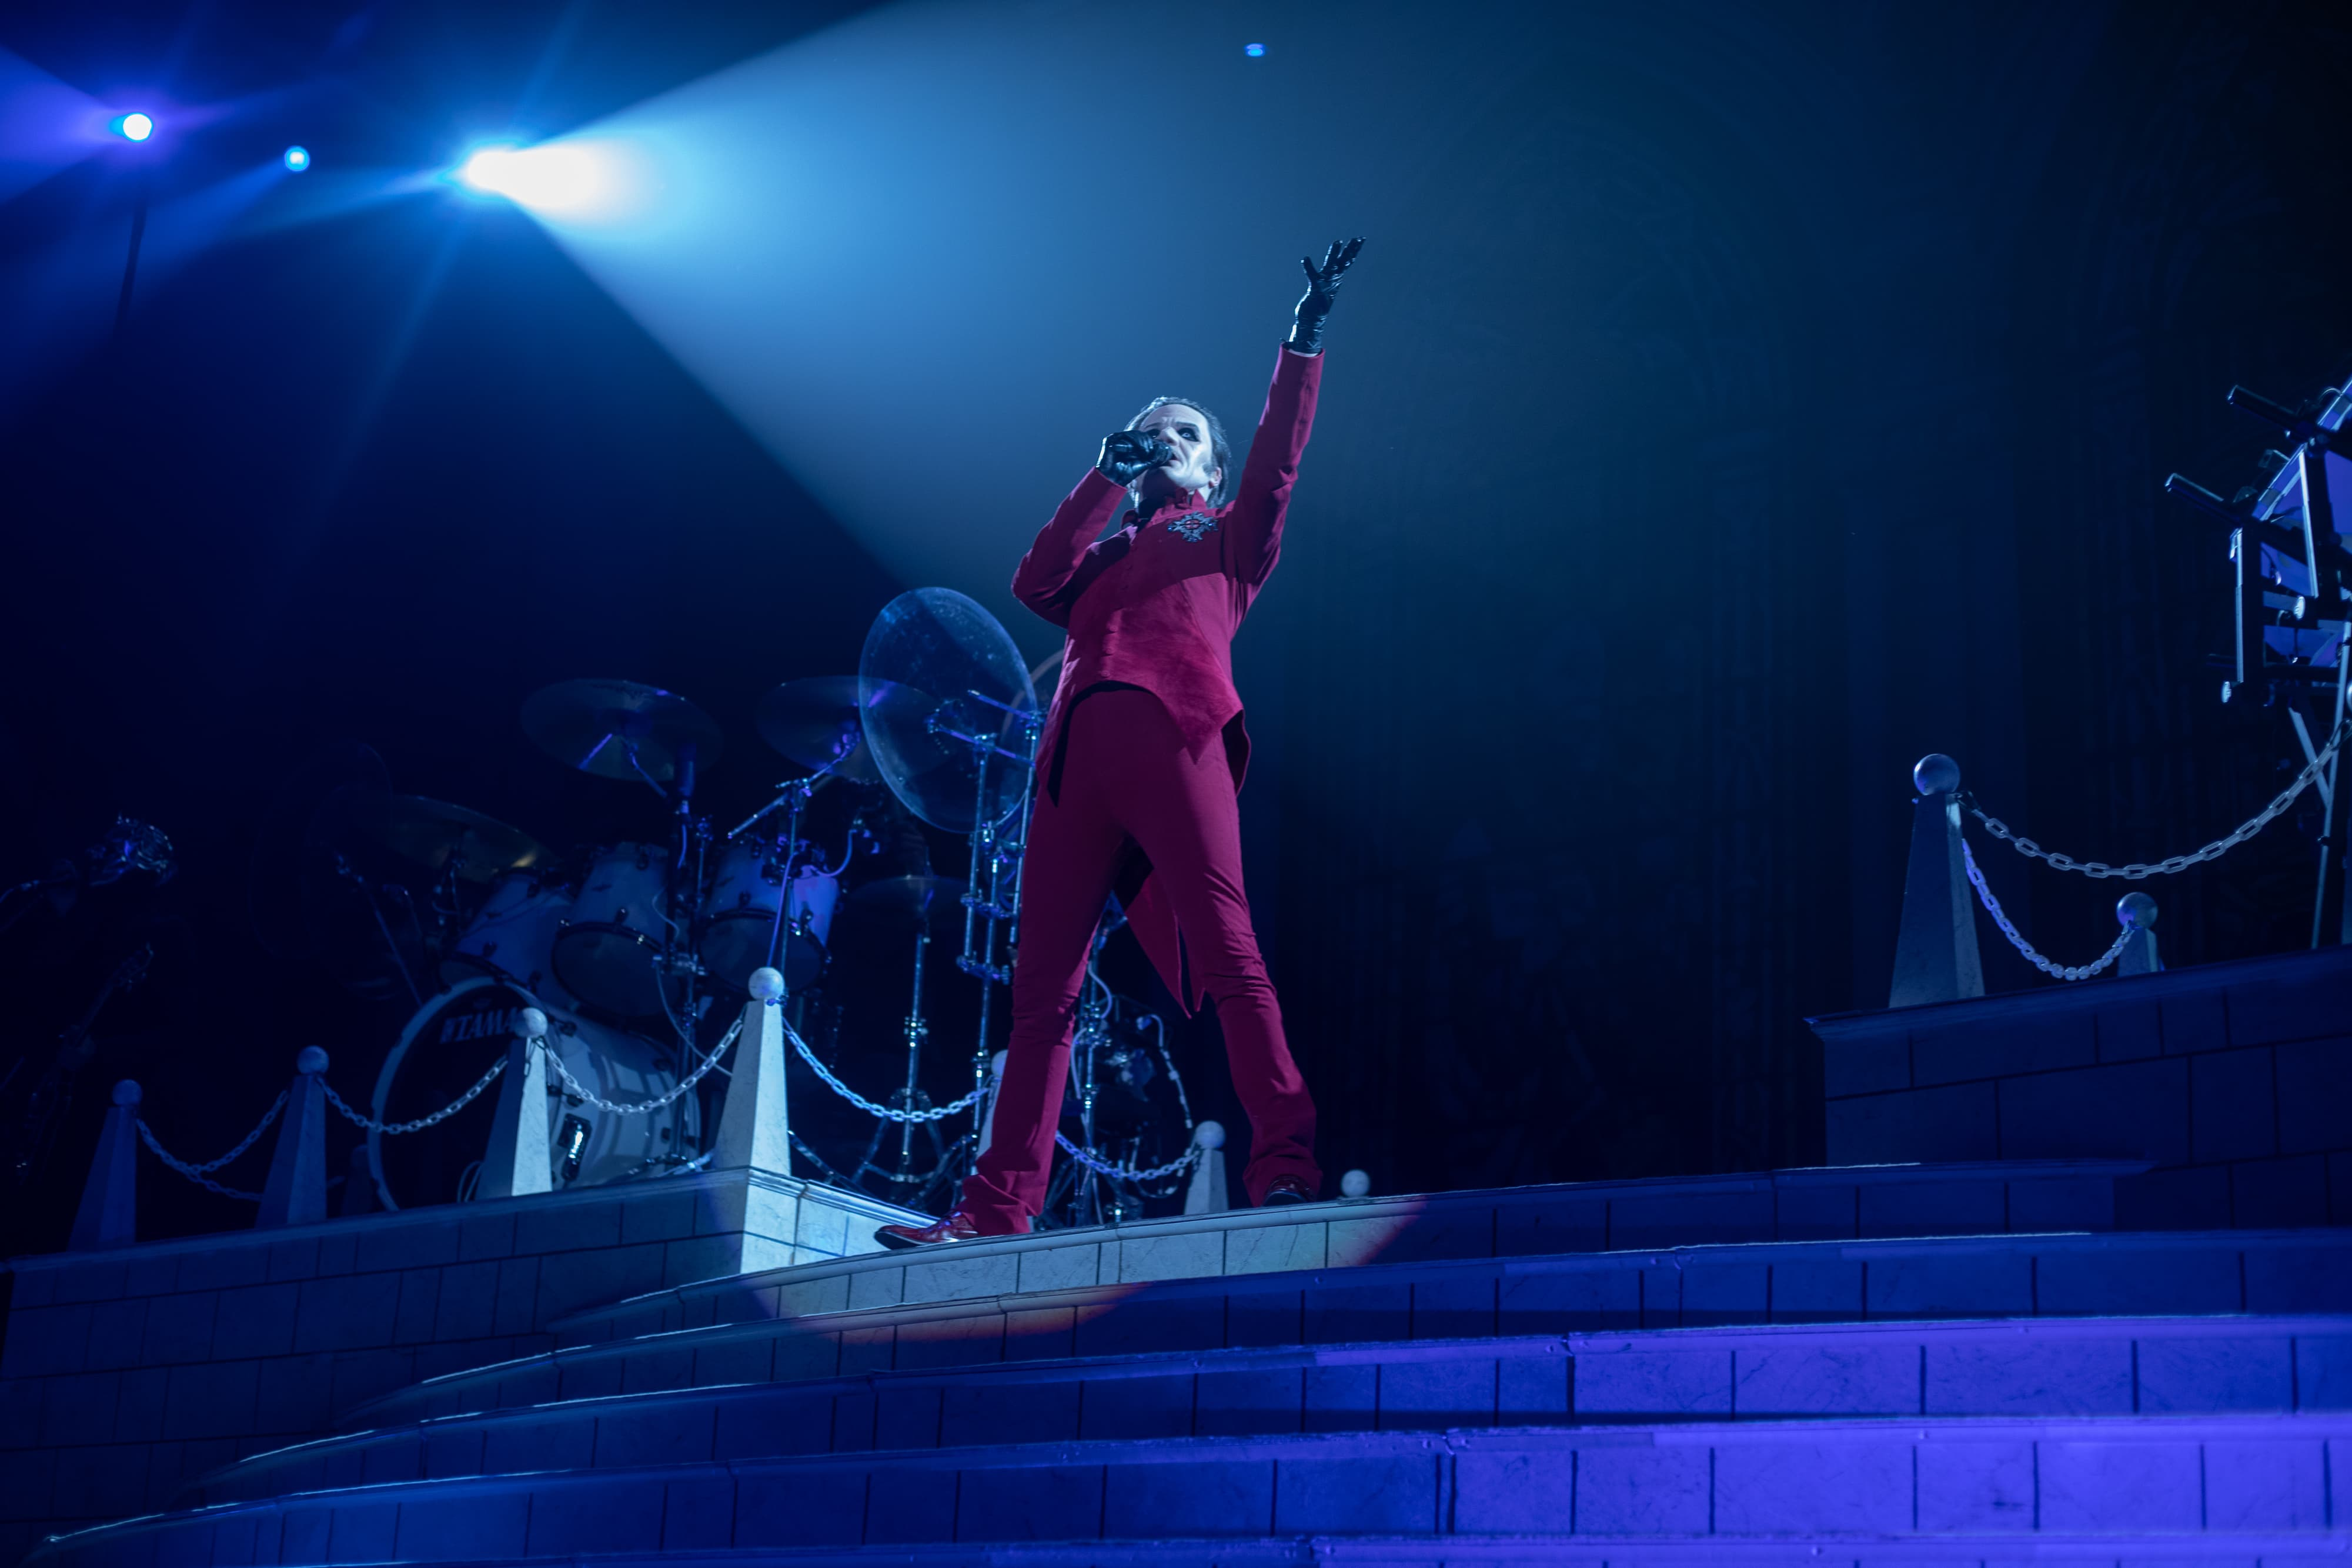 GHOST concert in Syracuse on Oct. 22, 2019 at War Memorial